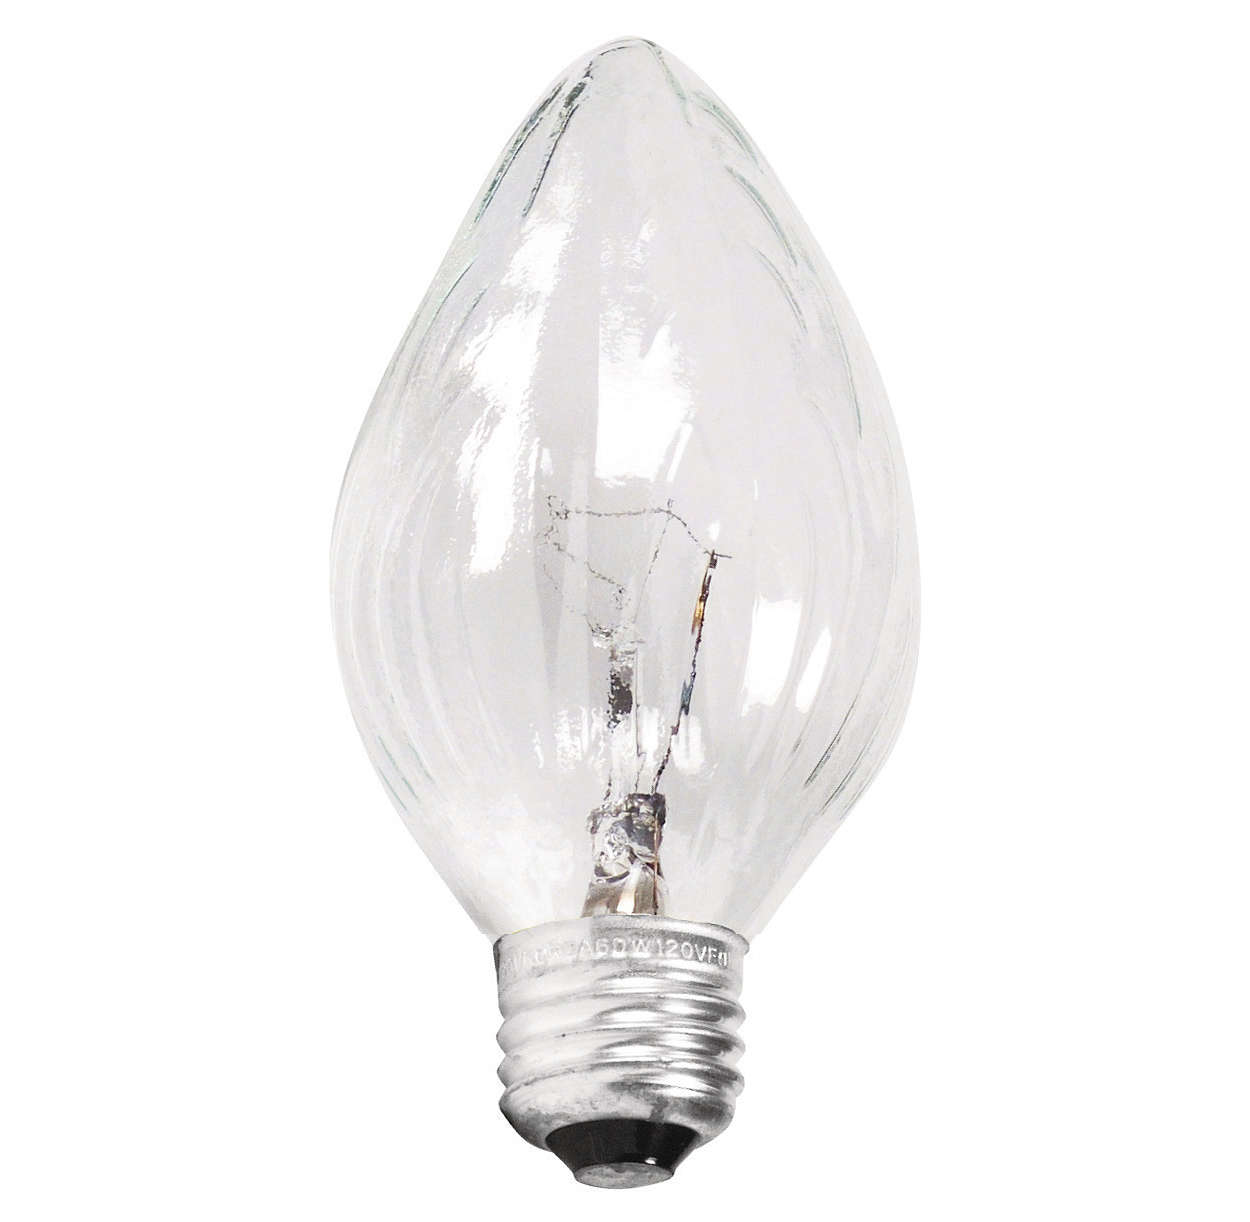 Duramax post light 046677168445 philips brighten your home with infinite possibilities aloadofball Gallery